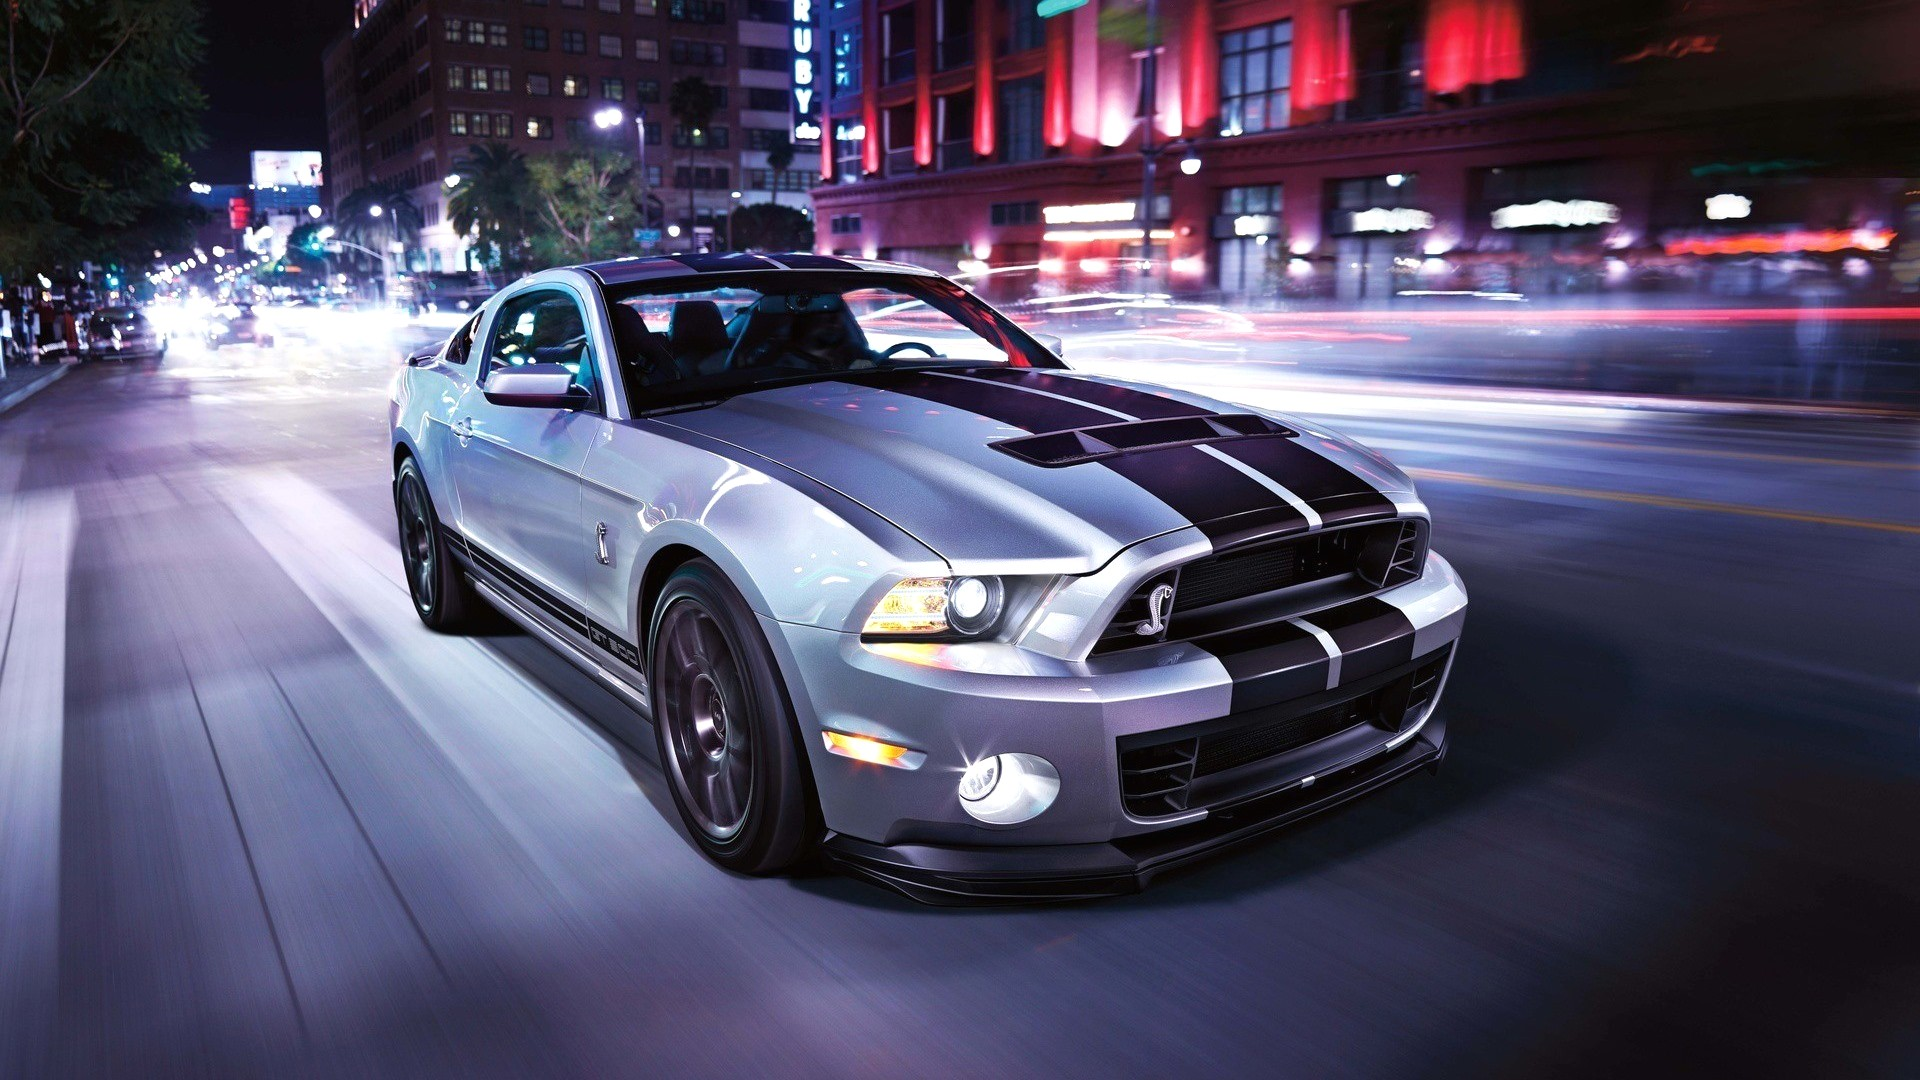 The world 2015 new pictures best car